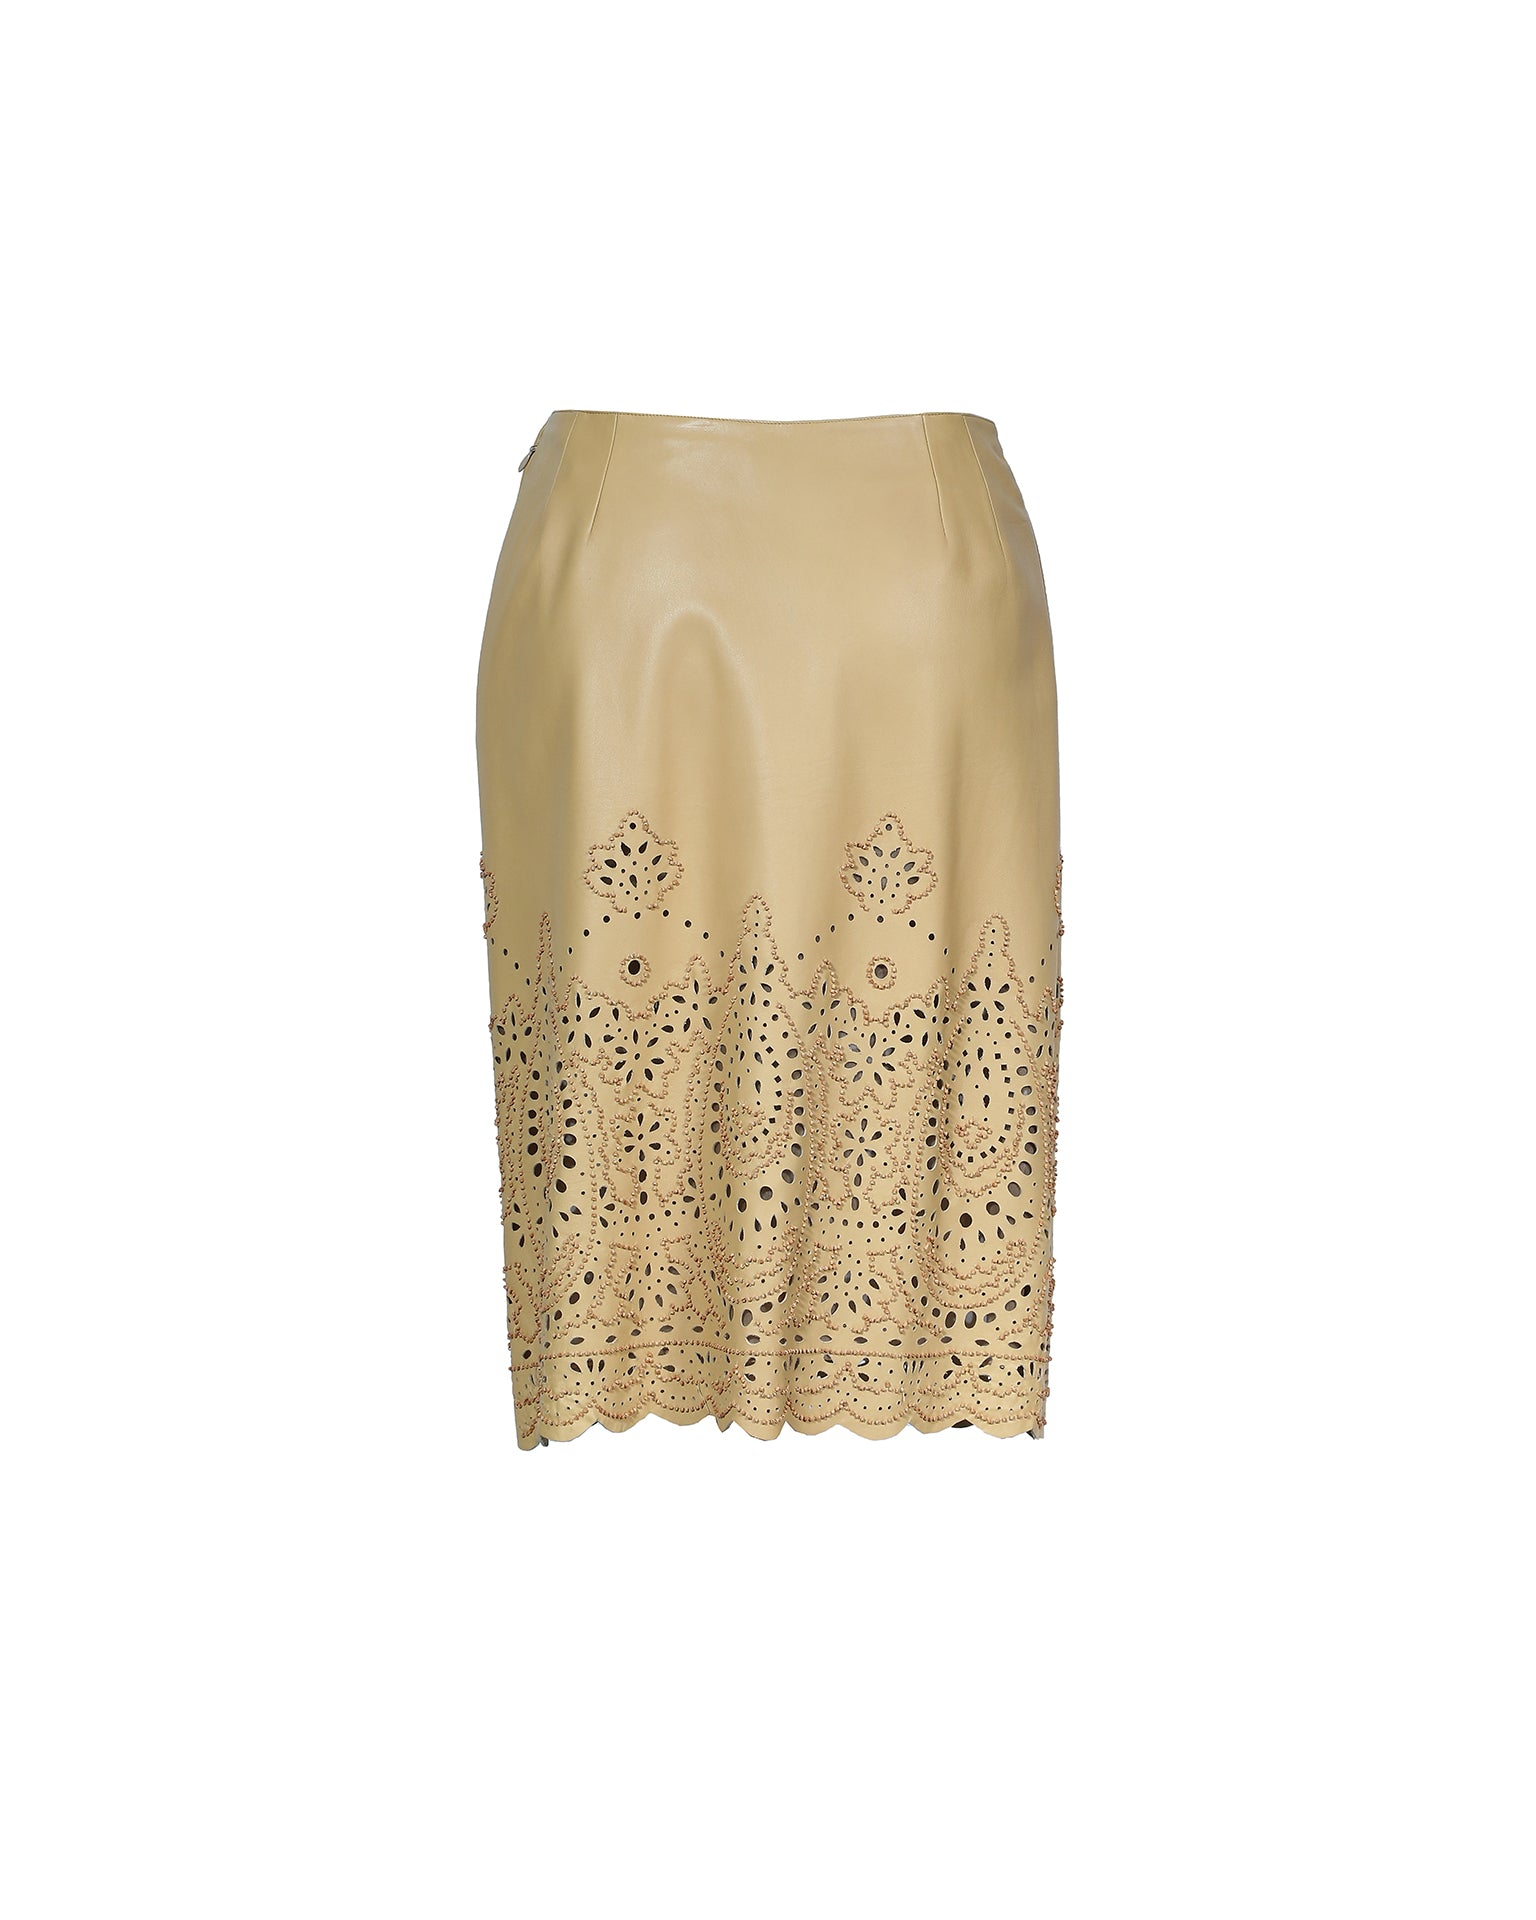 Oscar De La Renta Leather Skirt With Laser Cut and Beads in Beige Size 38 (EU)